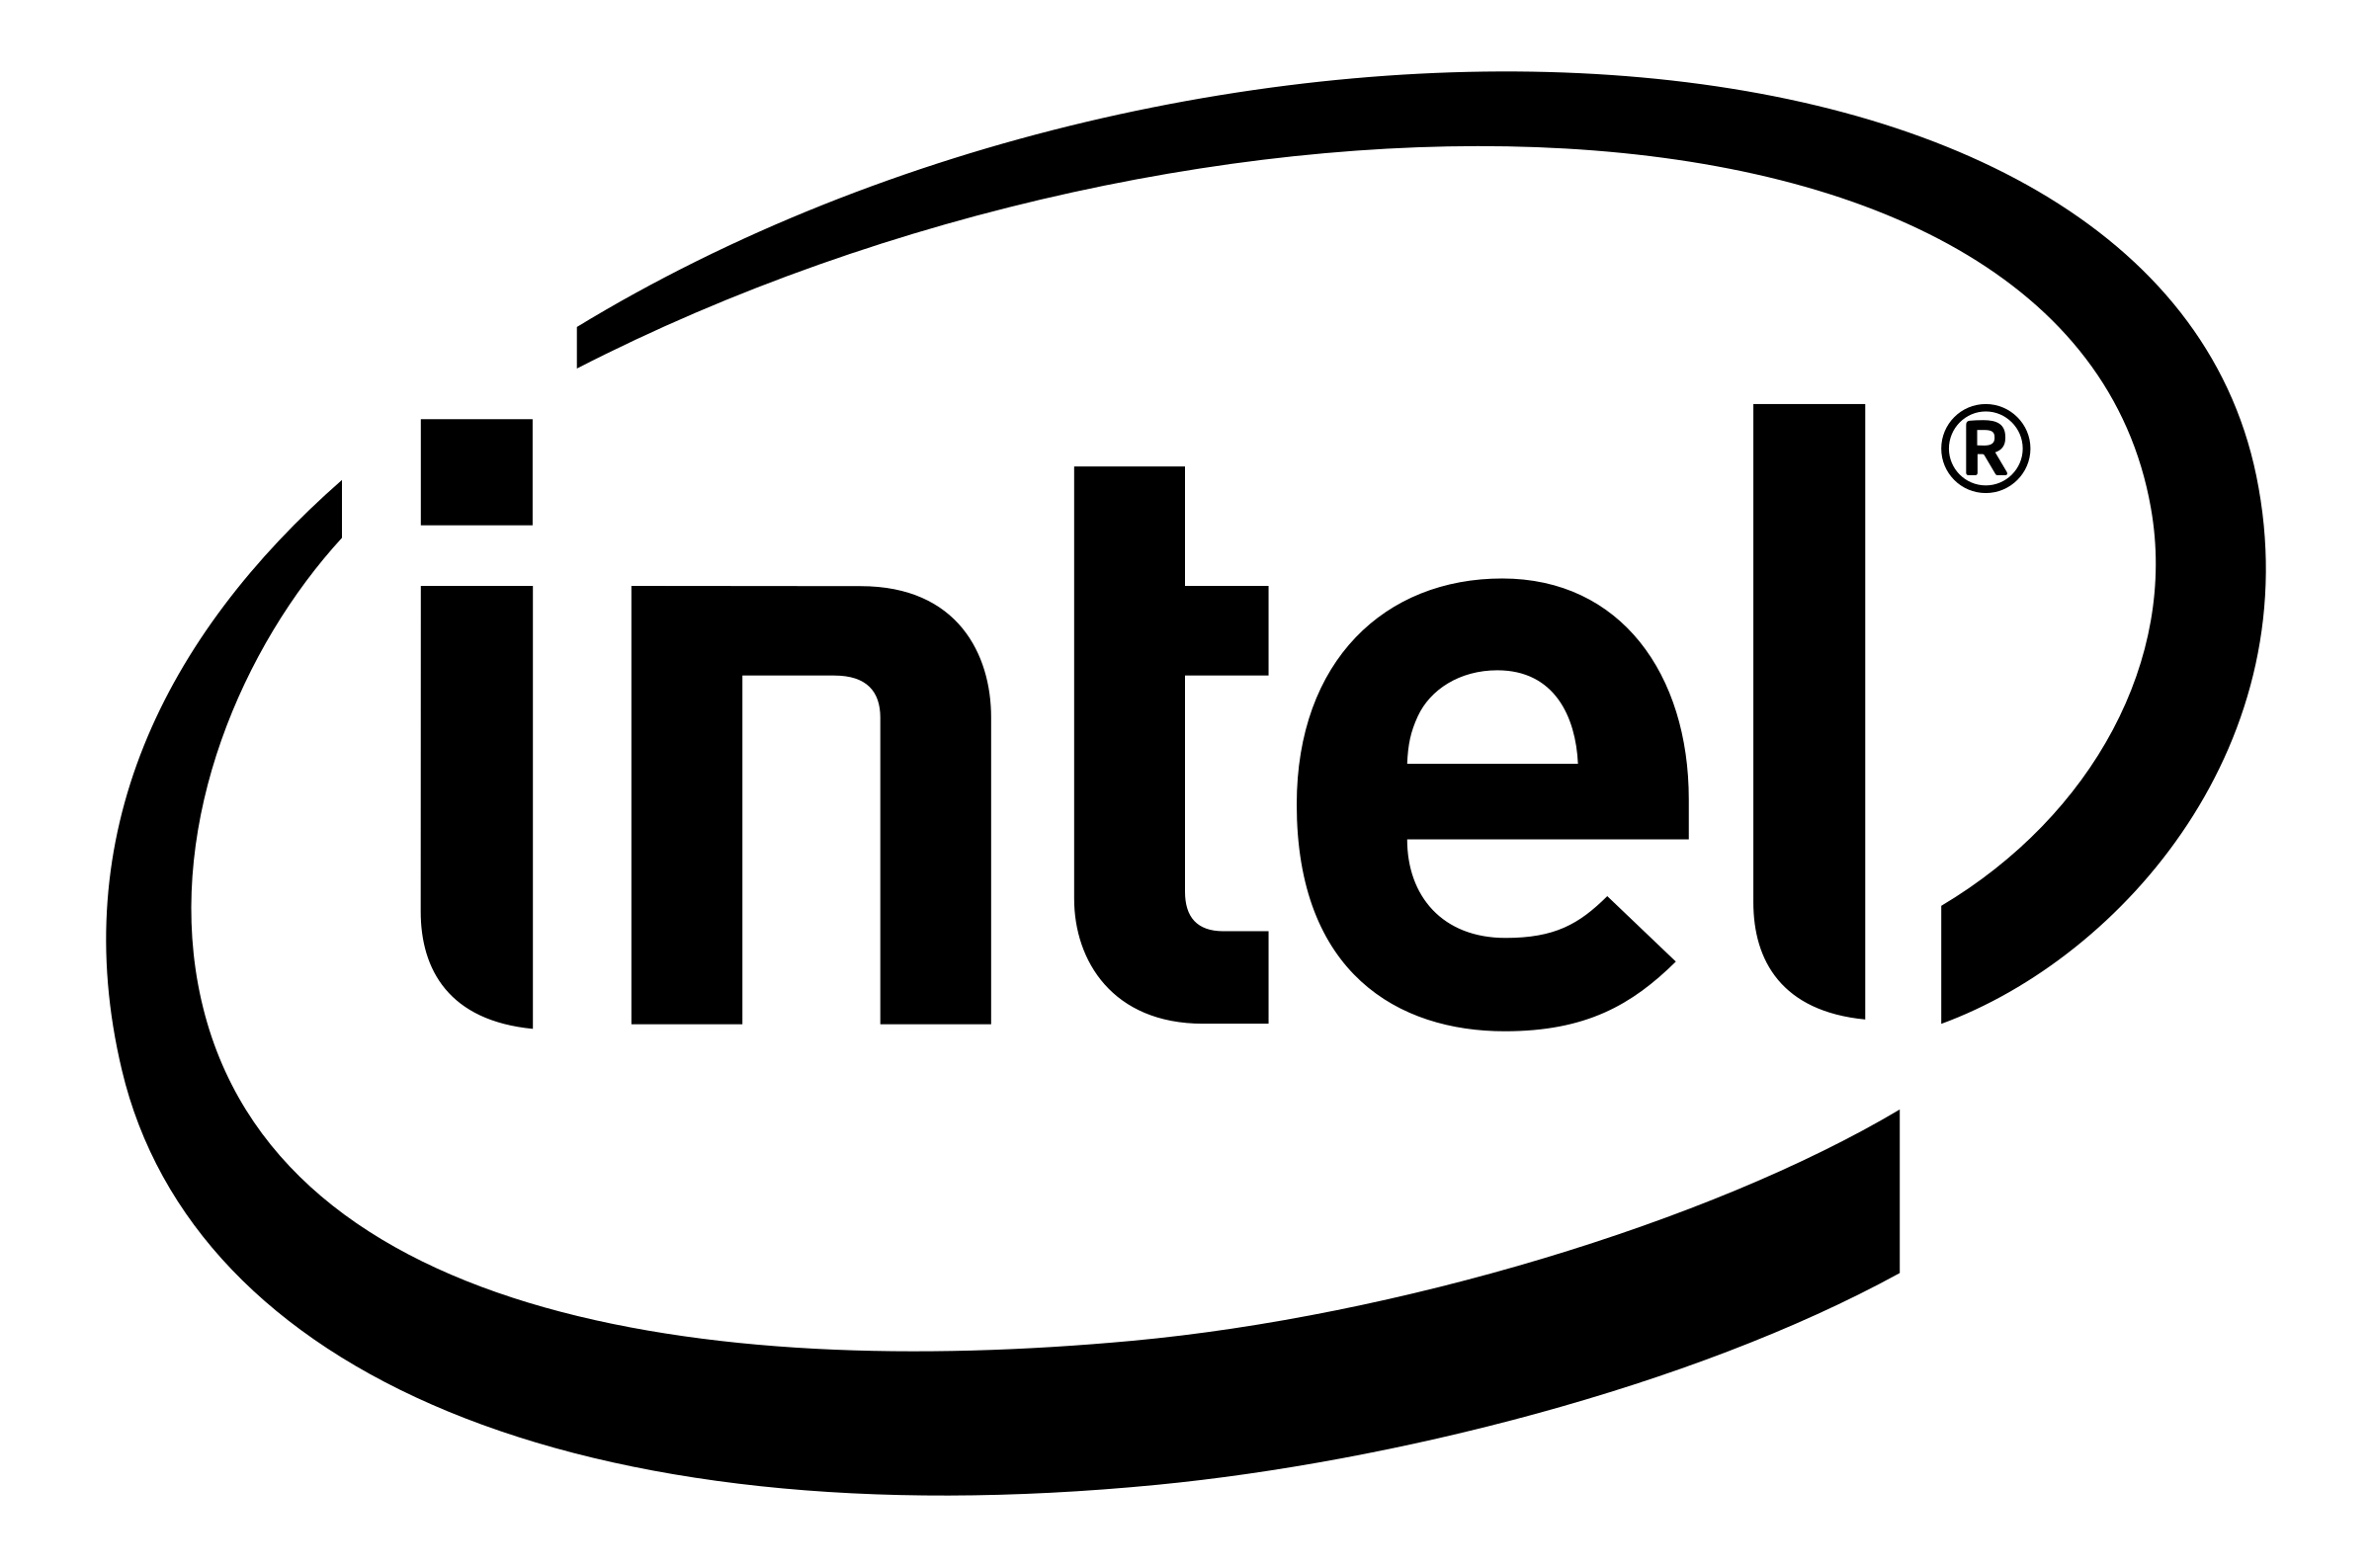 intel-logo-black-transparent.png